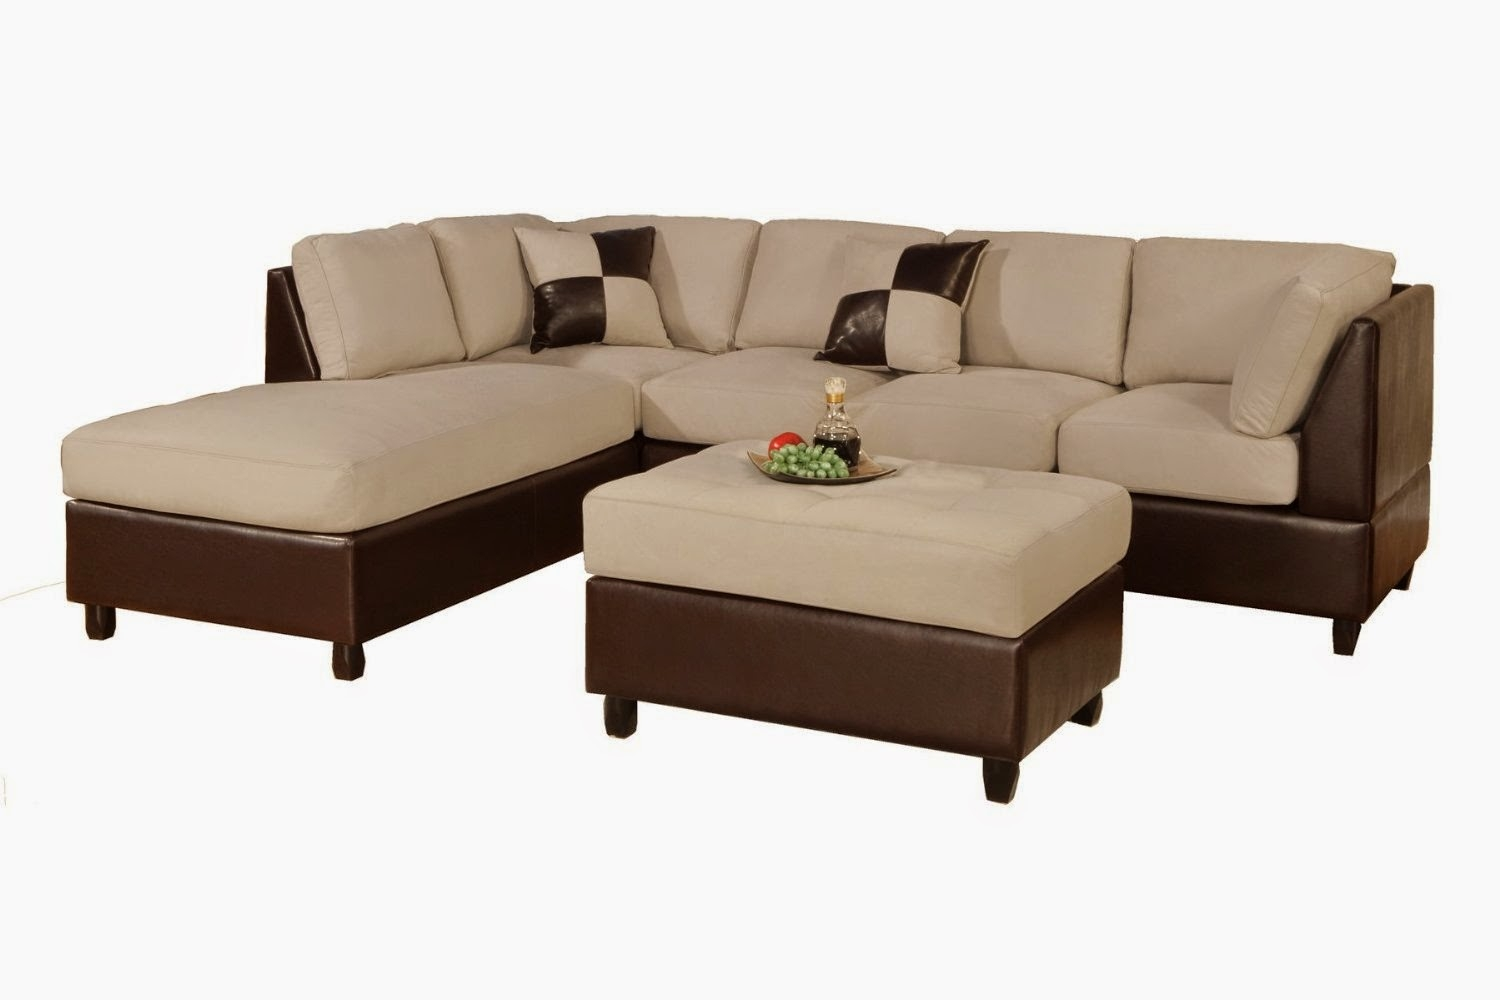 10 Piece Sectional Sofa Cleanupflorida With 10 Piece Sectional Sofa (#4 of 12)